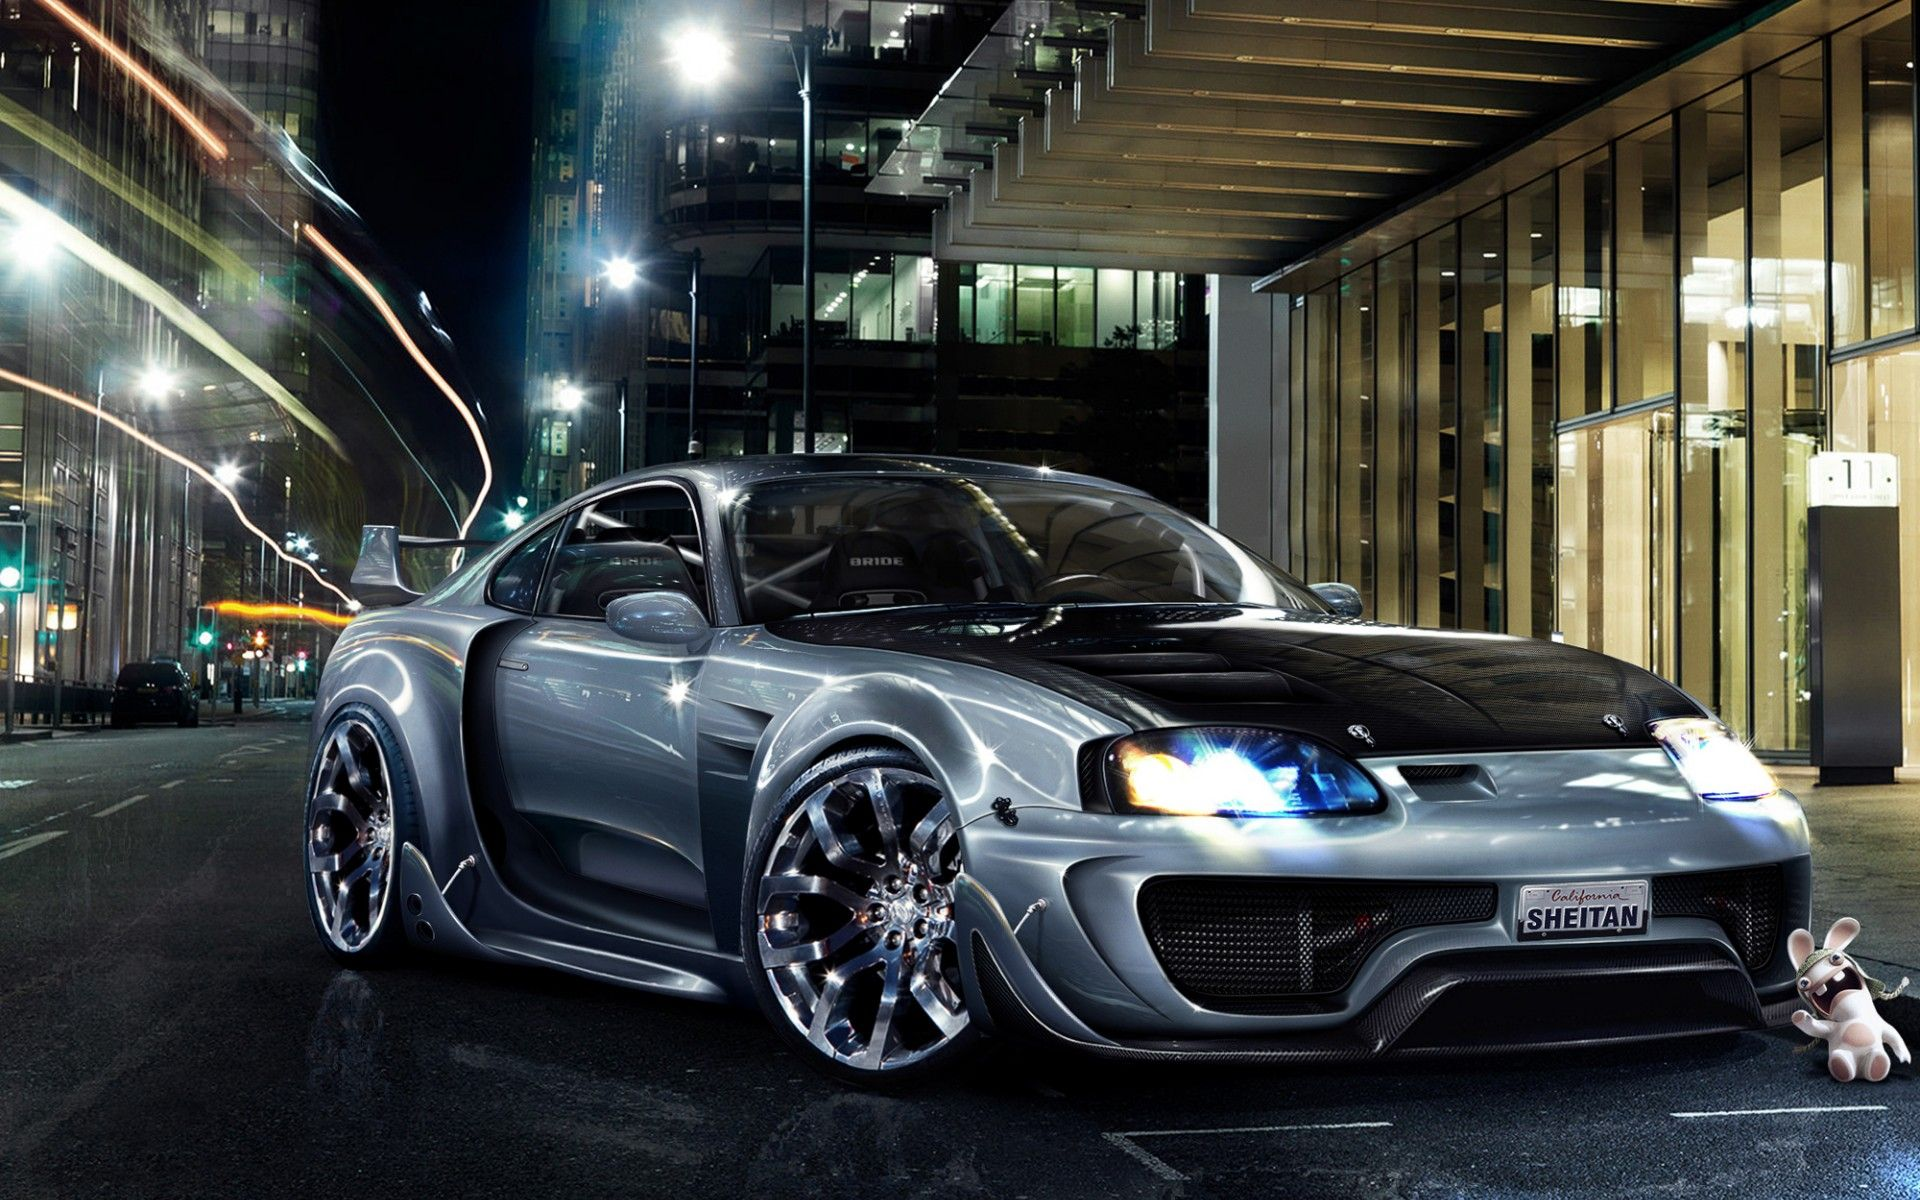 Toyota ft 86 open concept 2013 wallpaper hd car wallpapers - Toyota Supra Car Wallpaper Hd Resolutions For Desktop